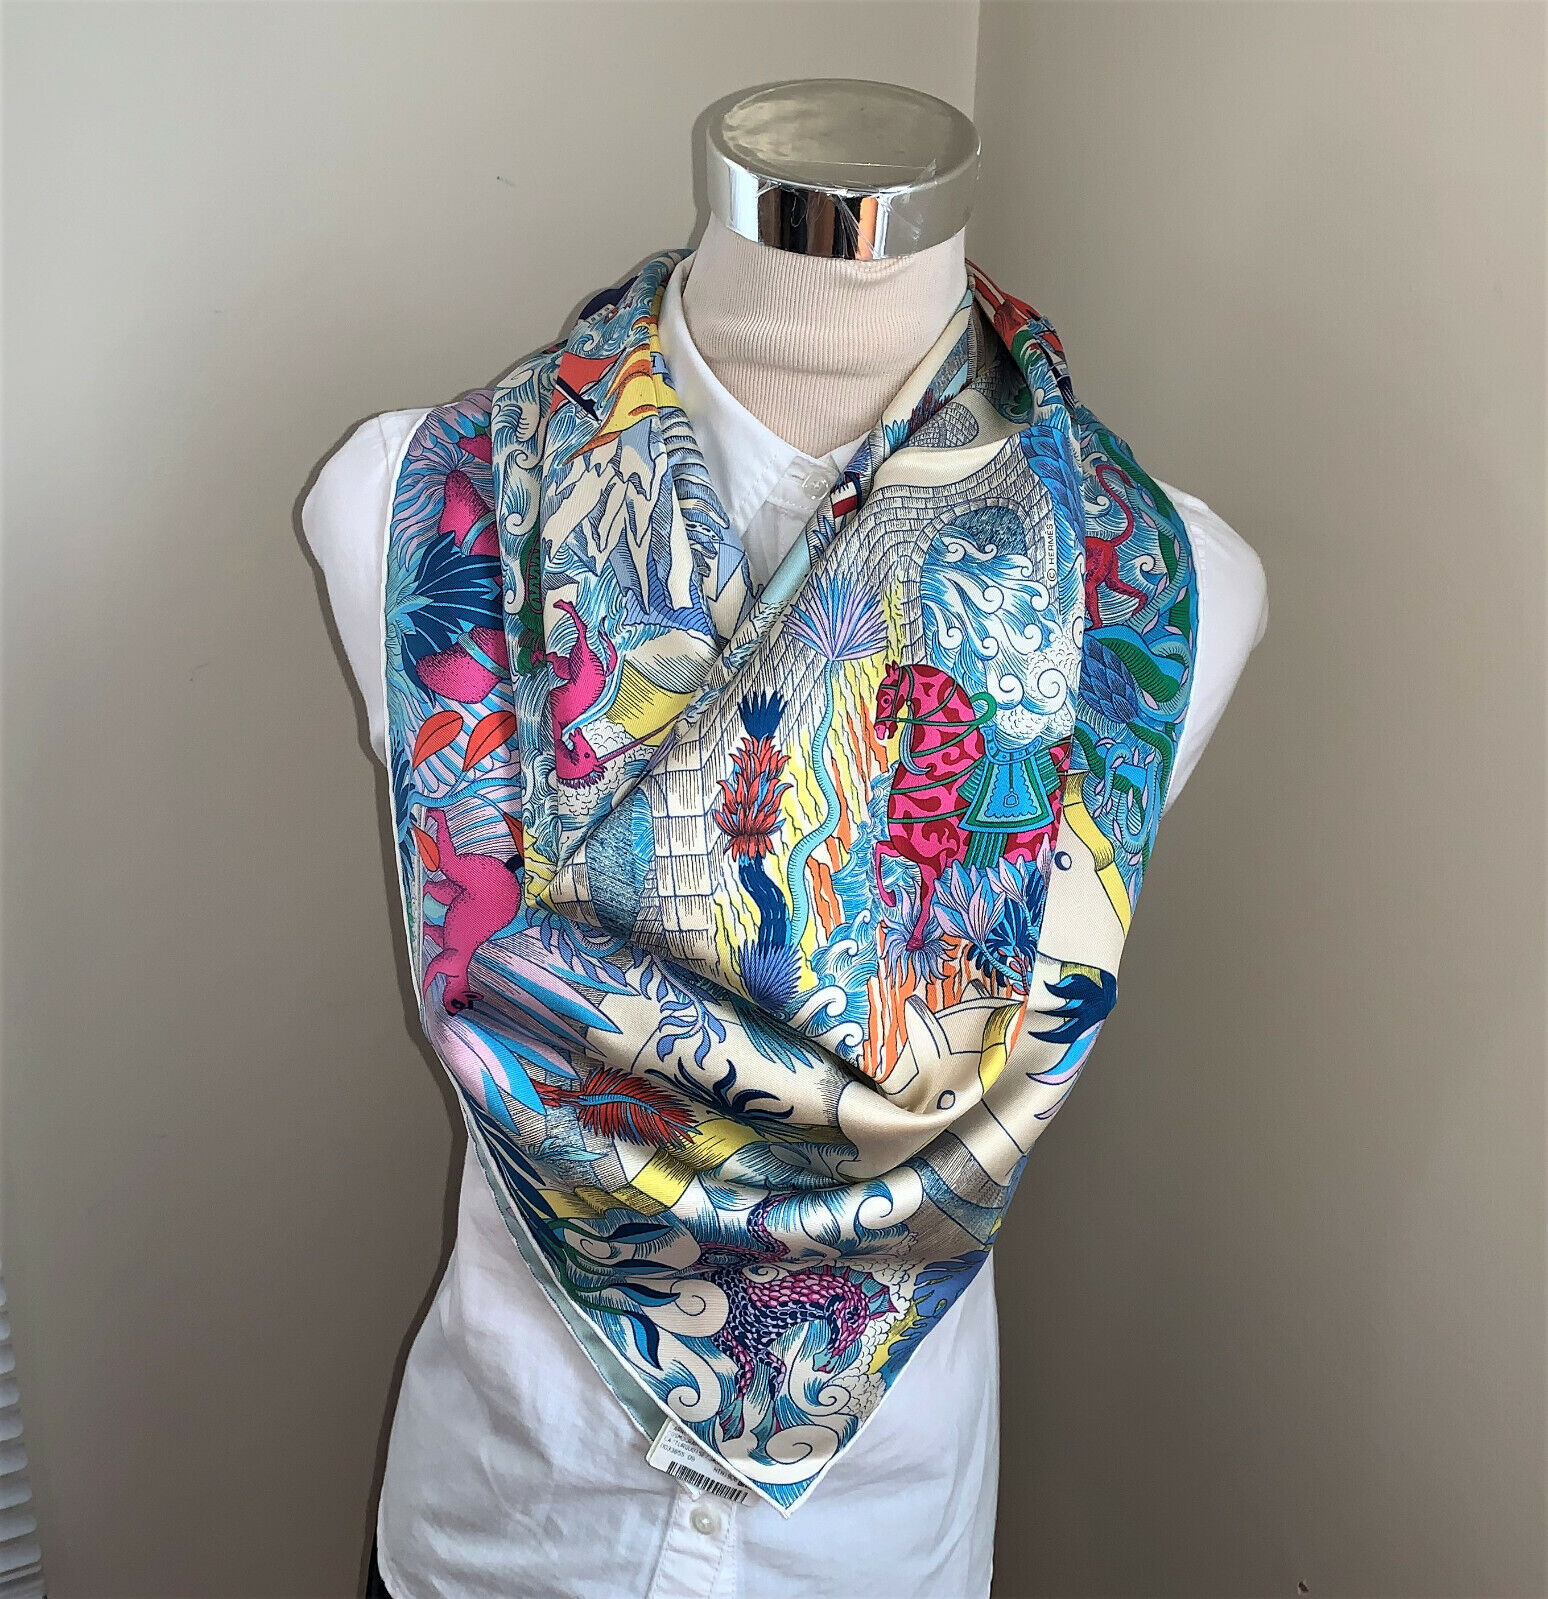 NWT Authentic Hermes Silk Blue Pink Yellow Grey Scarf Carre 90 Cosmographia